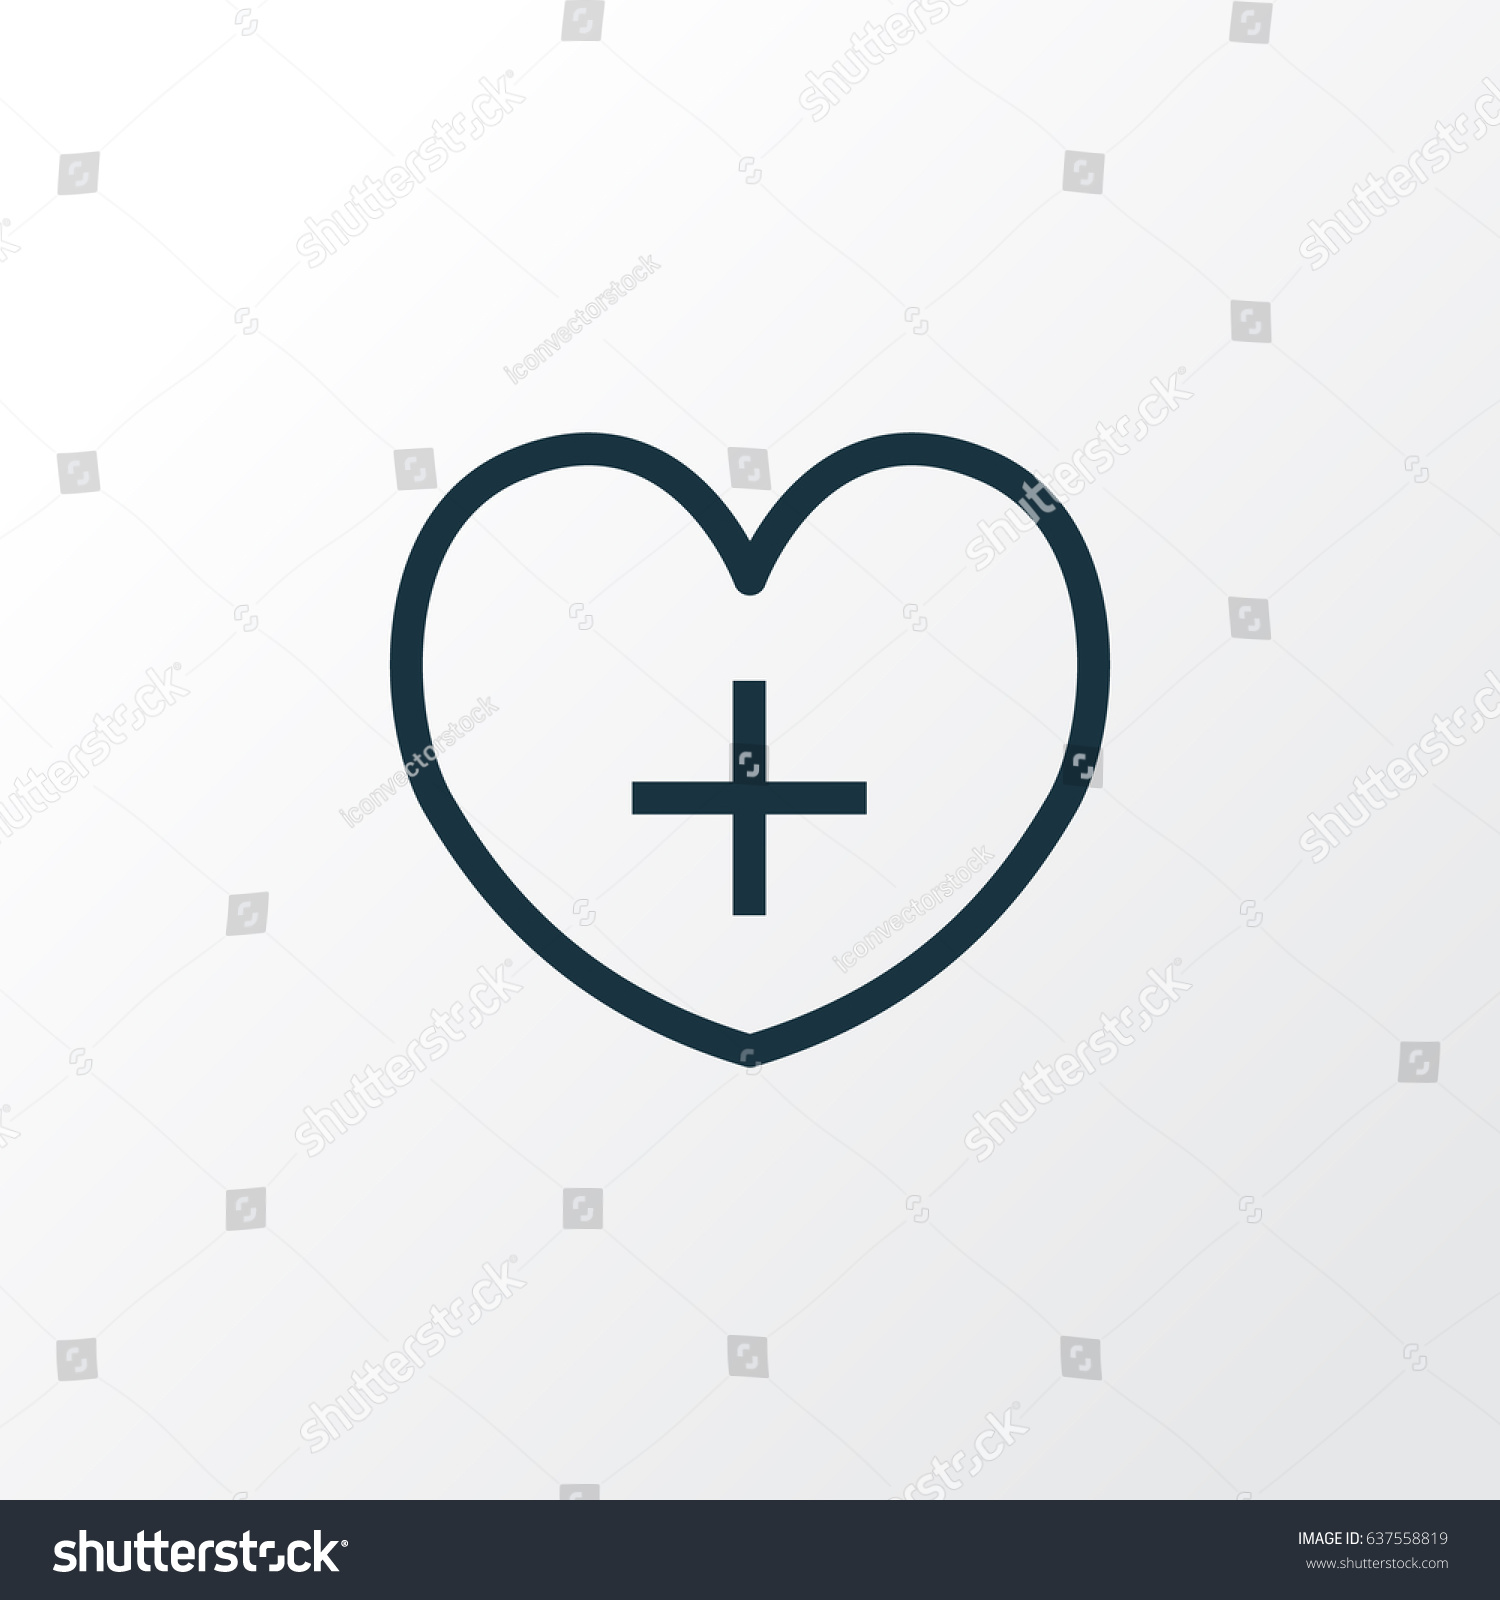 Heart outline symbol premium quality isolated stock vector heart outline symbol premium quality isolated life element in trendy style buycottarizona Image collections